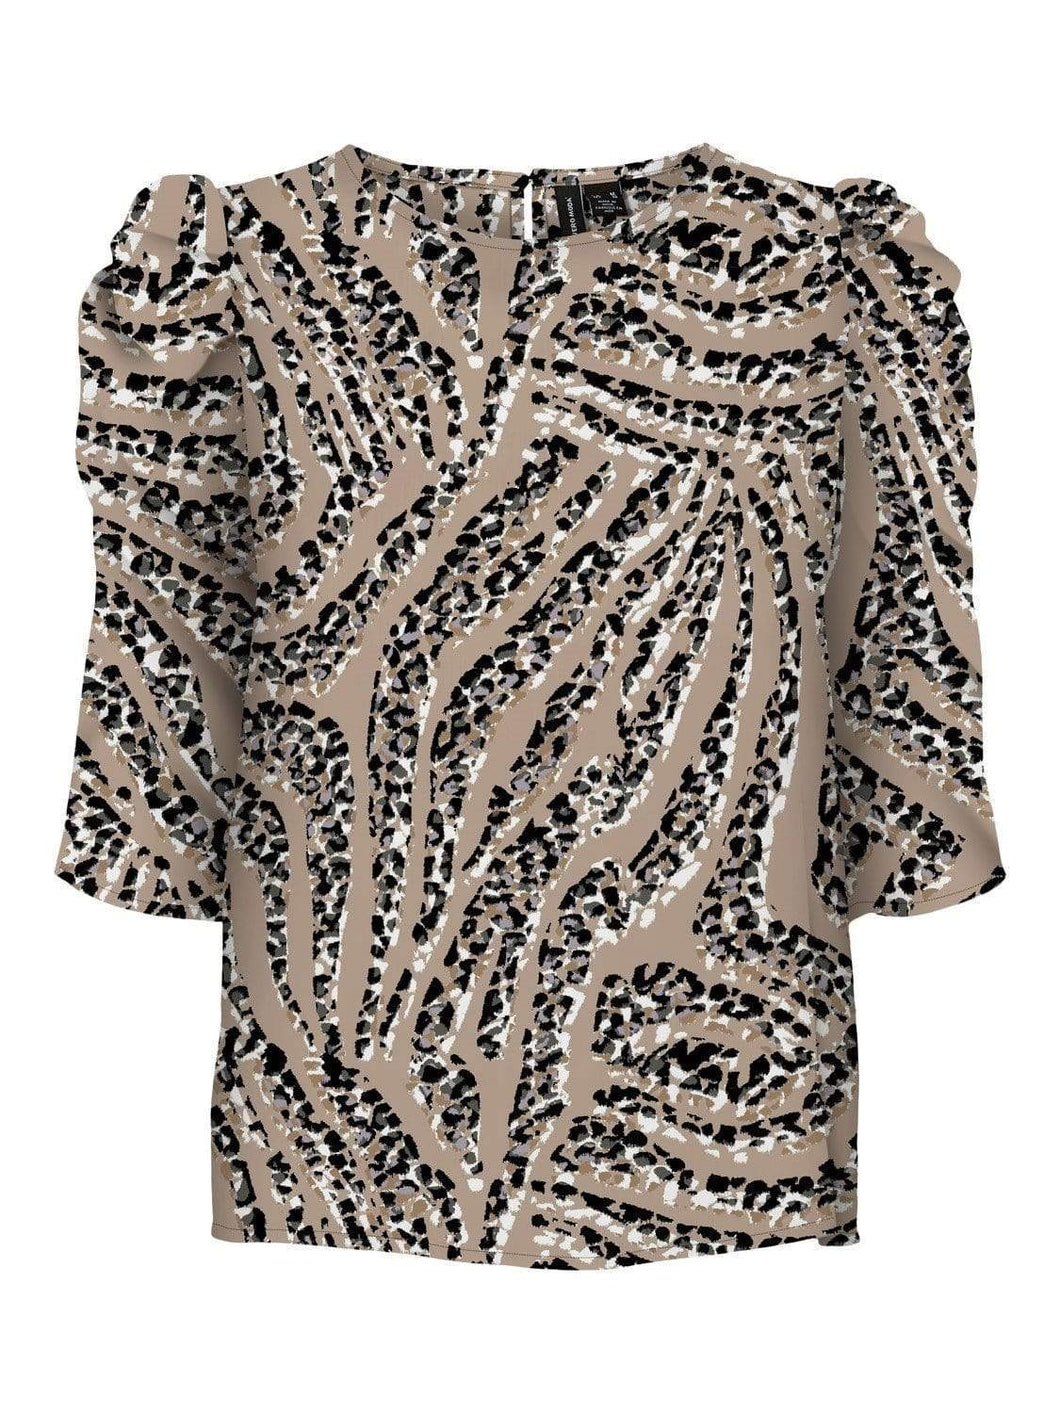 Vero Moda Animal Print Top - Stone